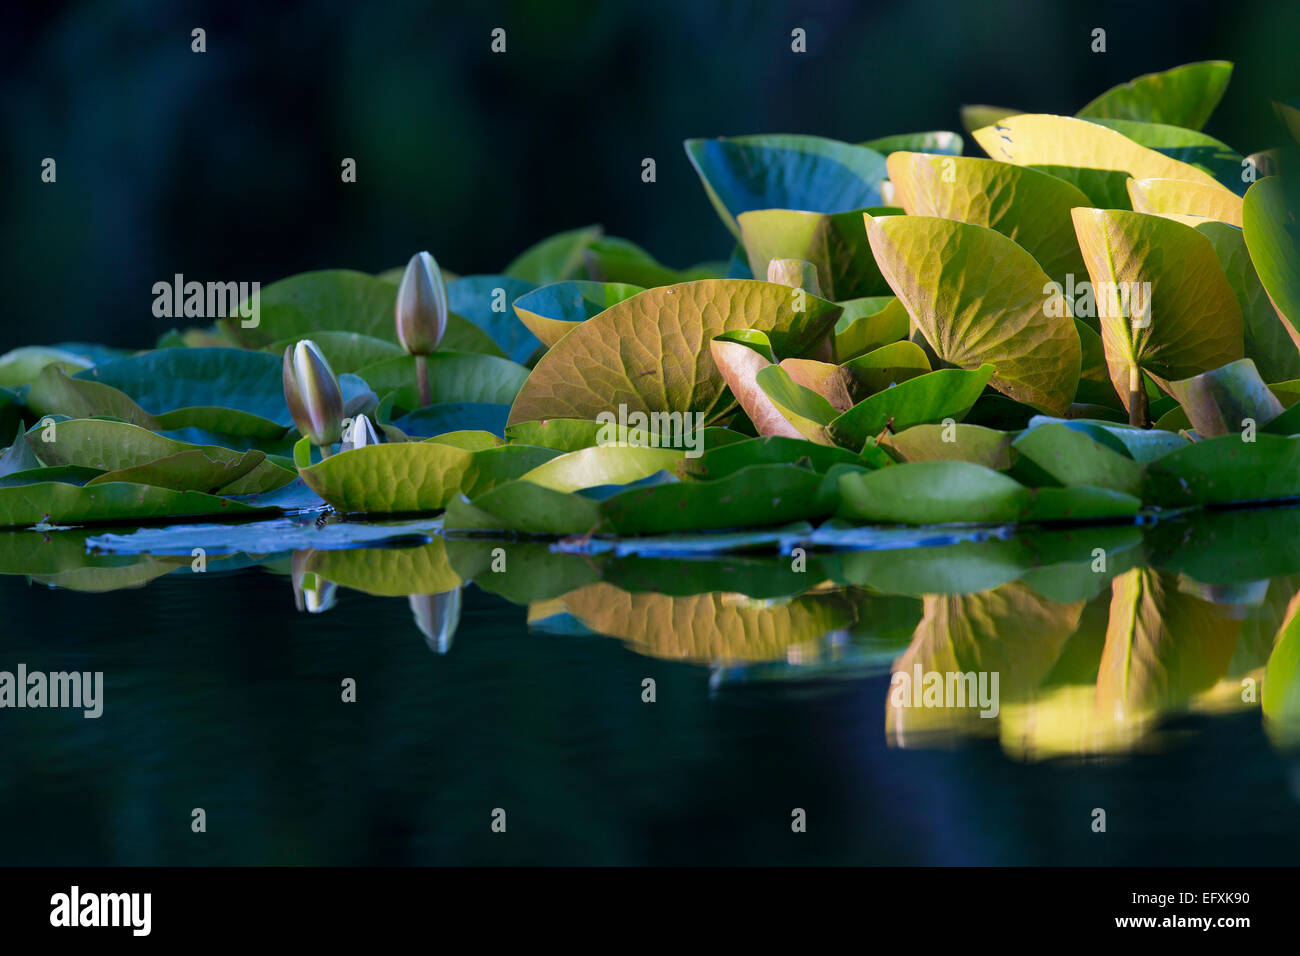 Water Lilies Buds Opening Cornwall; UK - Stock Image